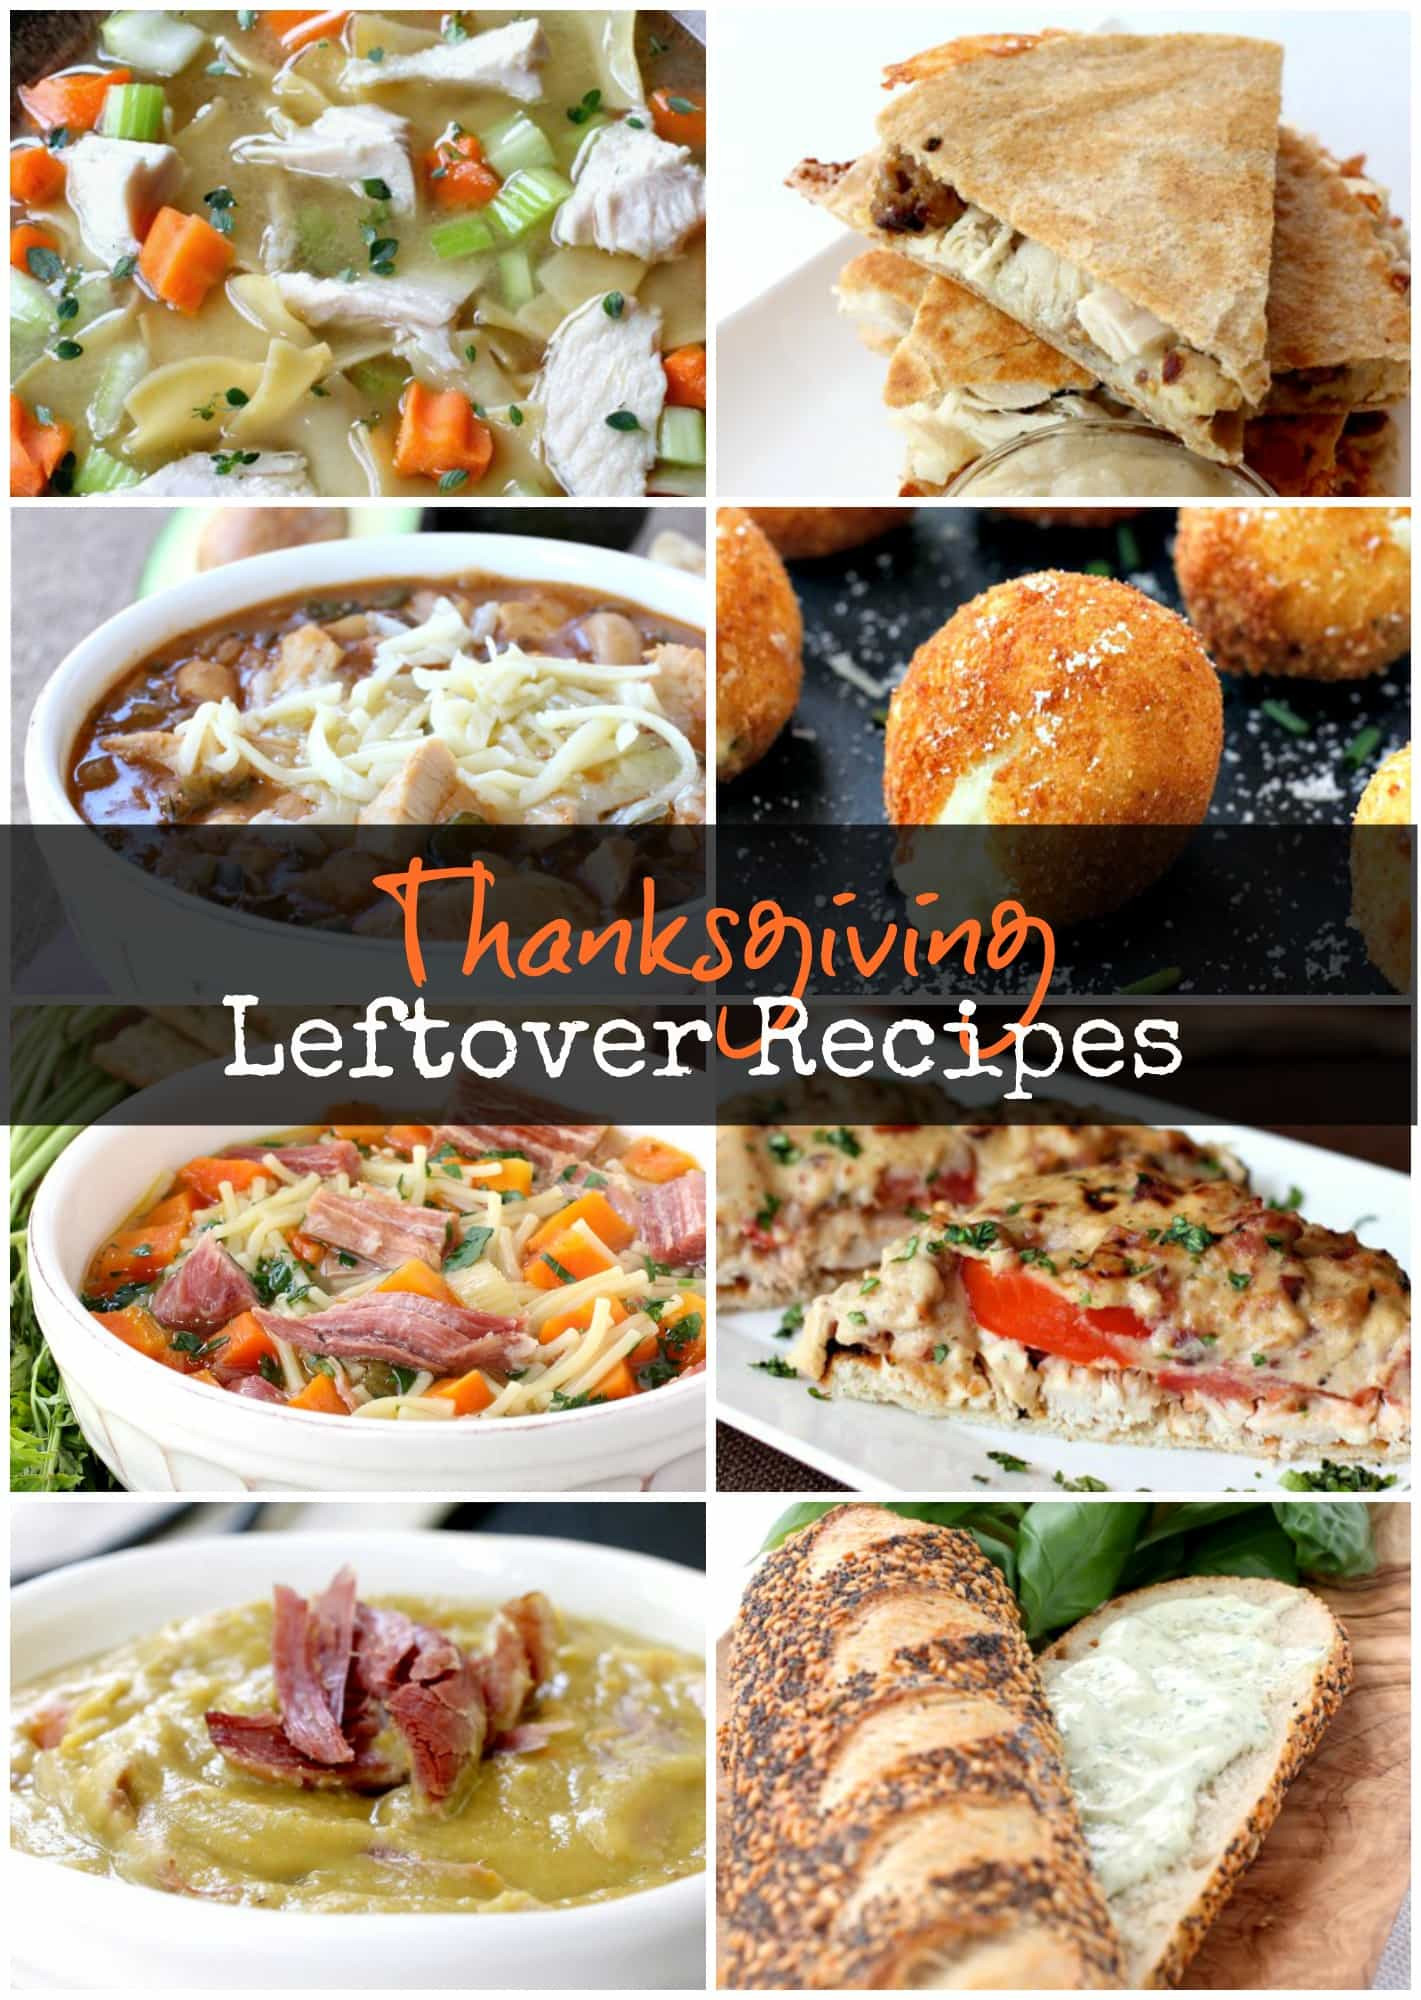 Thanksgiving Leftovers Recipes  Thanksgiving Leftover Recipes Mantitlement